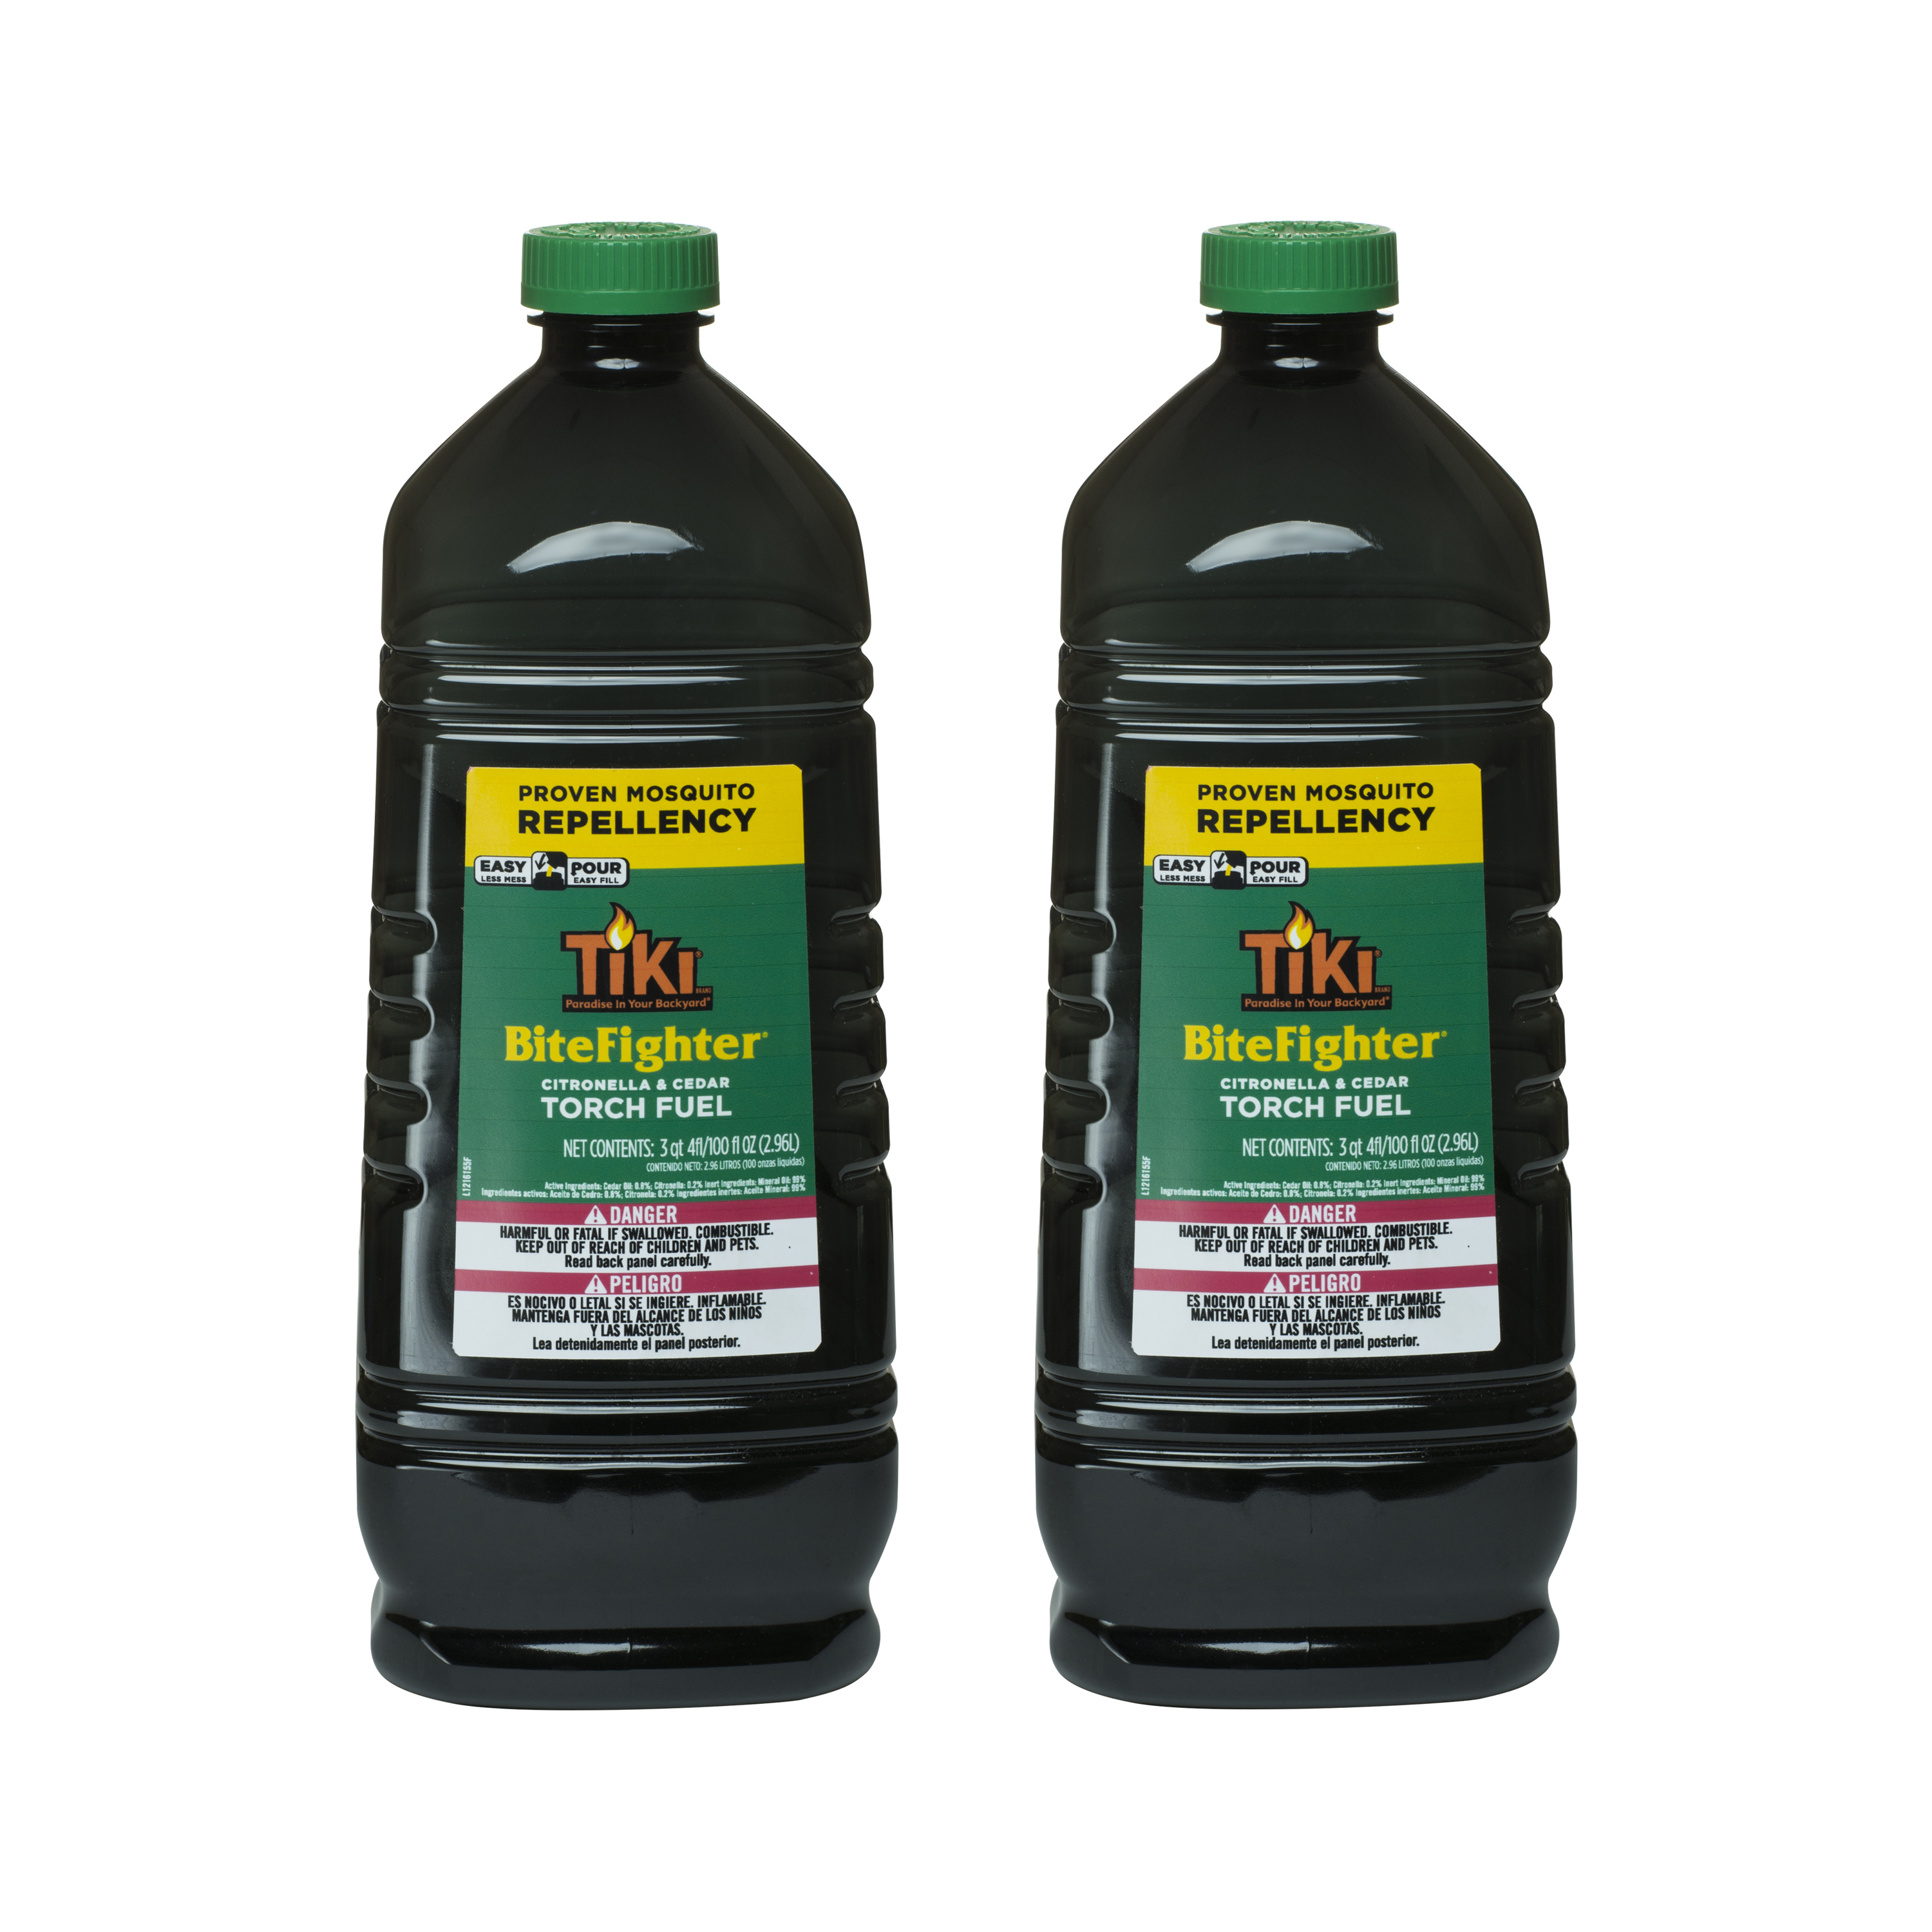 TIKI® Brand 100 oz. BiteFighter Torch Fuel with Easy Pour System 2-pack